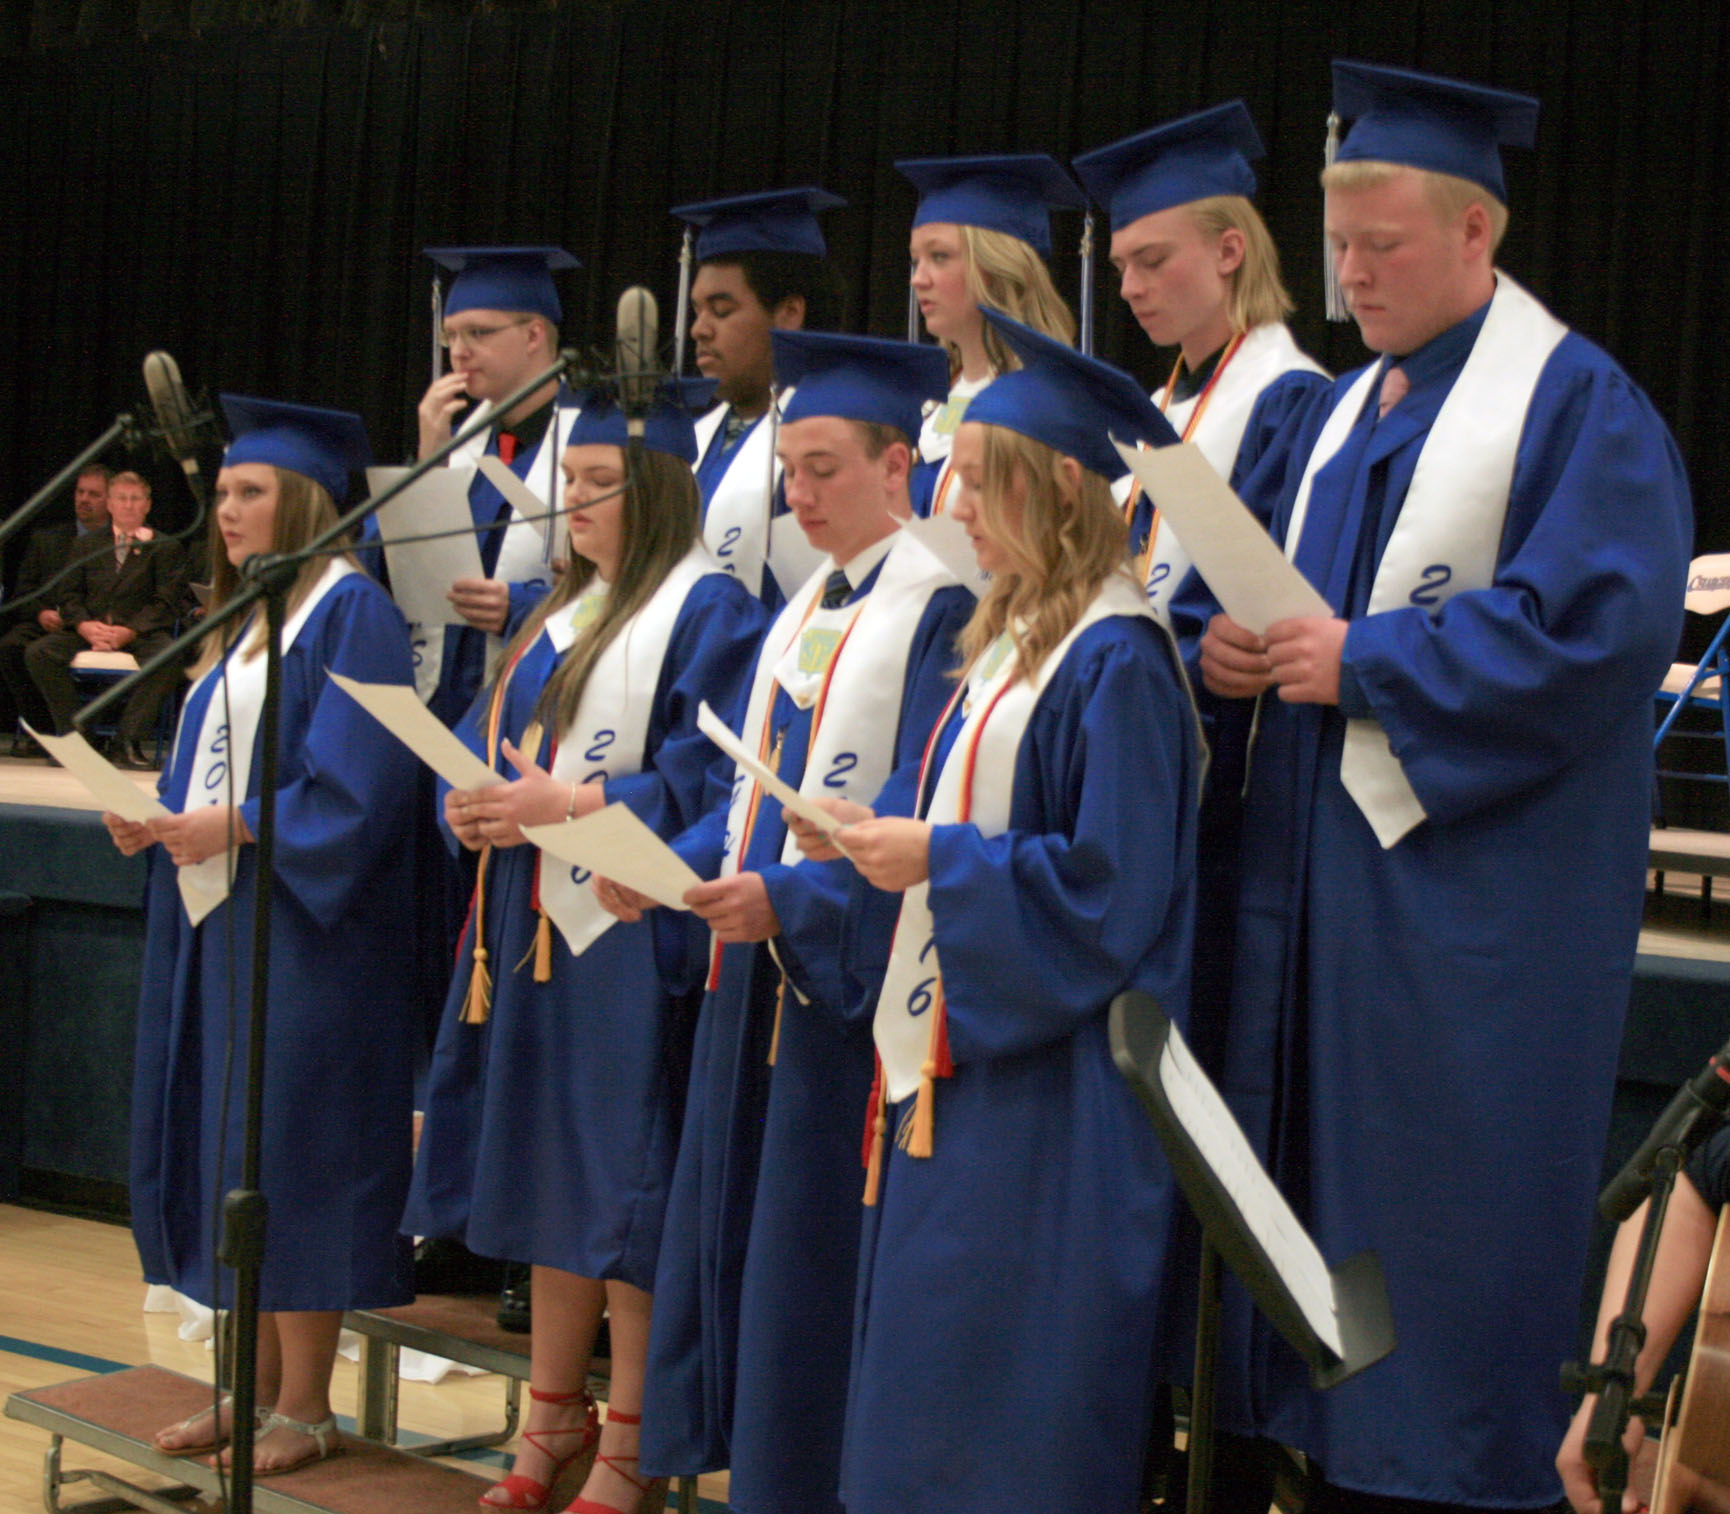 The nine members of the Goodridge High School Class of 2016 sang together for the last time at their graduation ceremony Sunday, May 22 at the school.